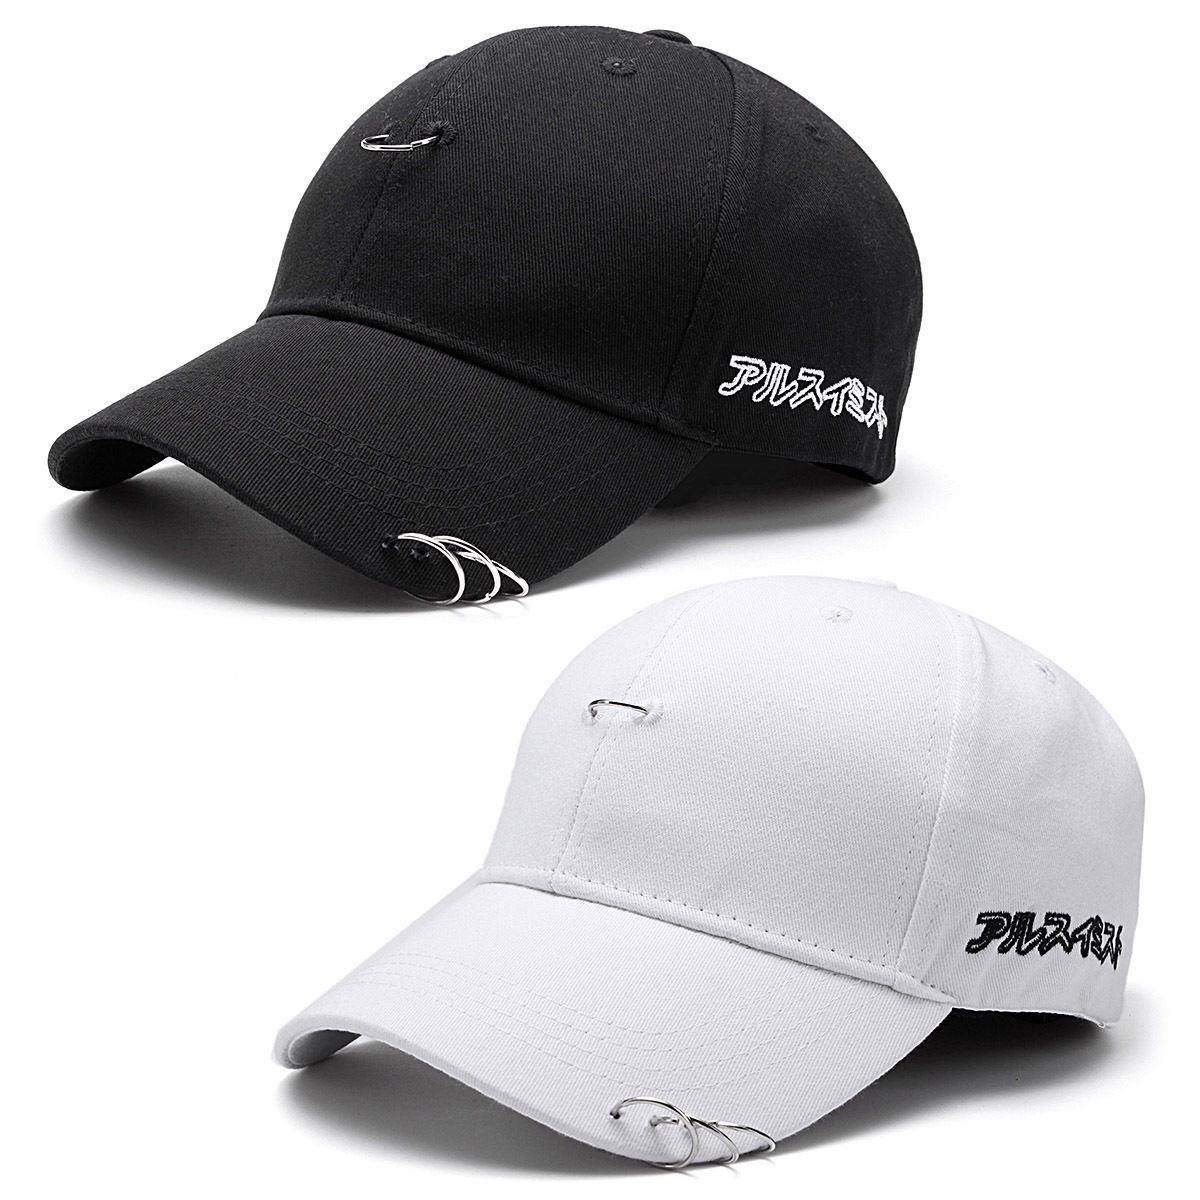 ... Solid Ring Safety Pin Curved Hats Baseball Cap Men Women Snapback Caps  Sport Casquette Gorras DM 6 High Quality Hat Player China Hat Sun Hot  Weather ... 11e119fafc1